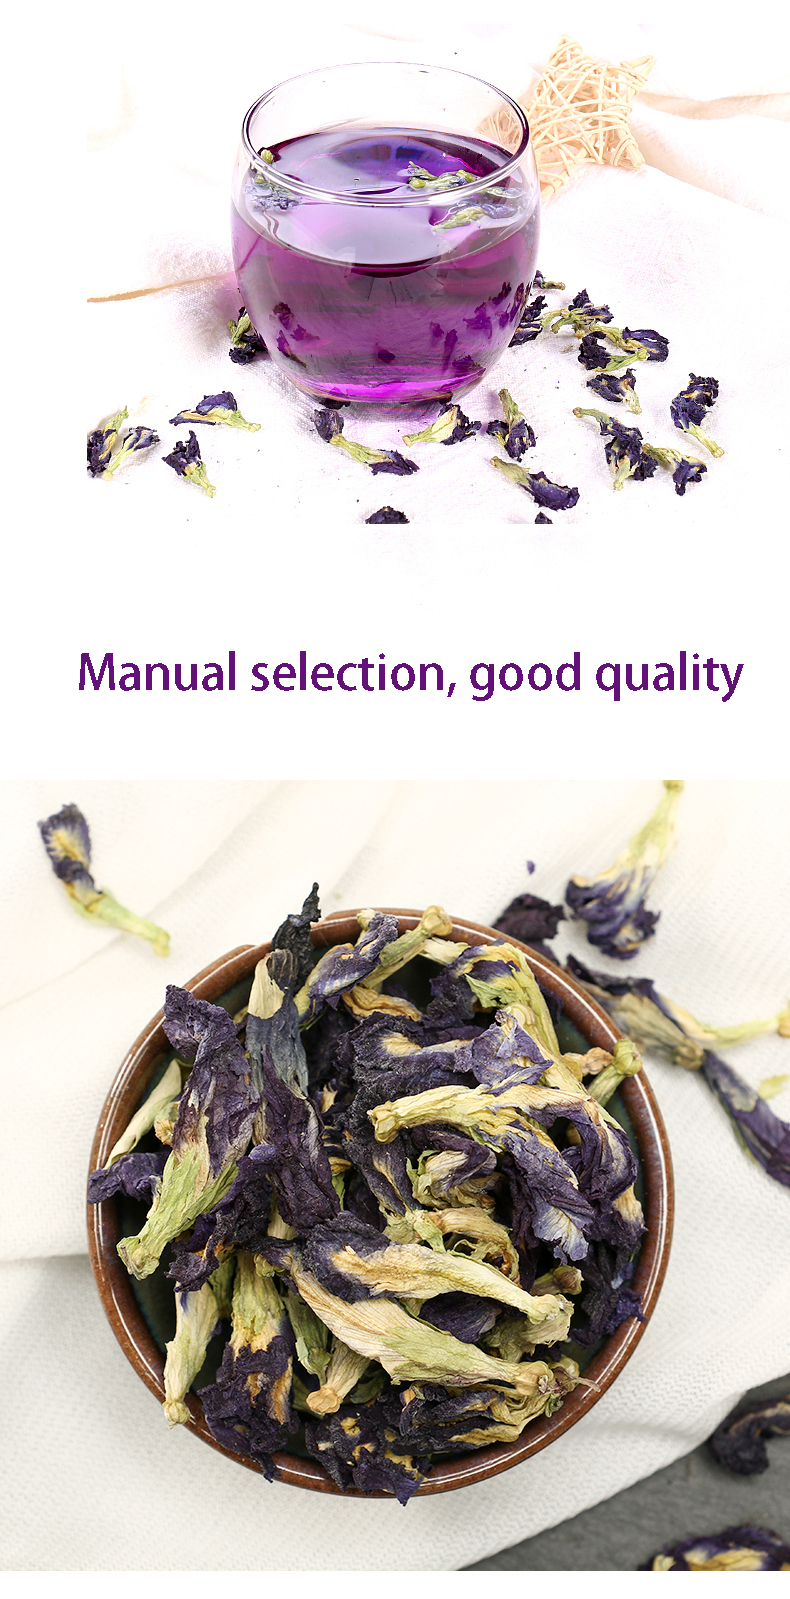 Dropship butterfly pea flower dried blue color butterfly pea tea - 4uTea | 4uTea.com